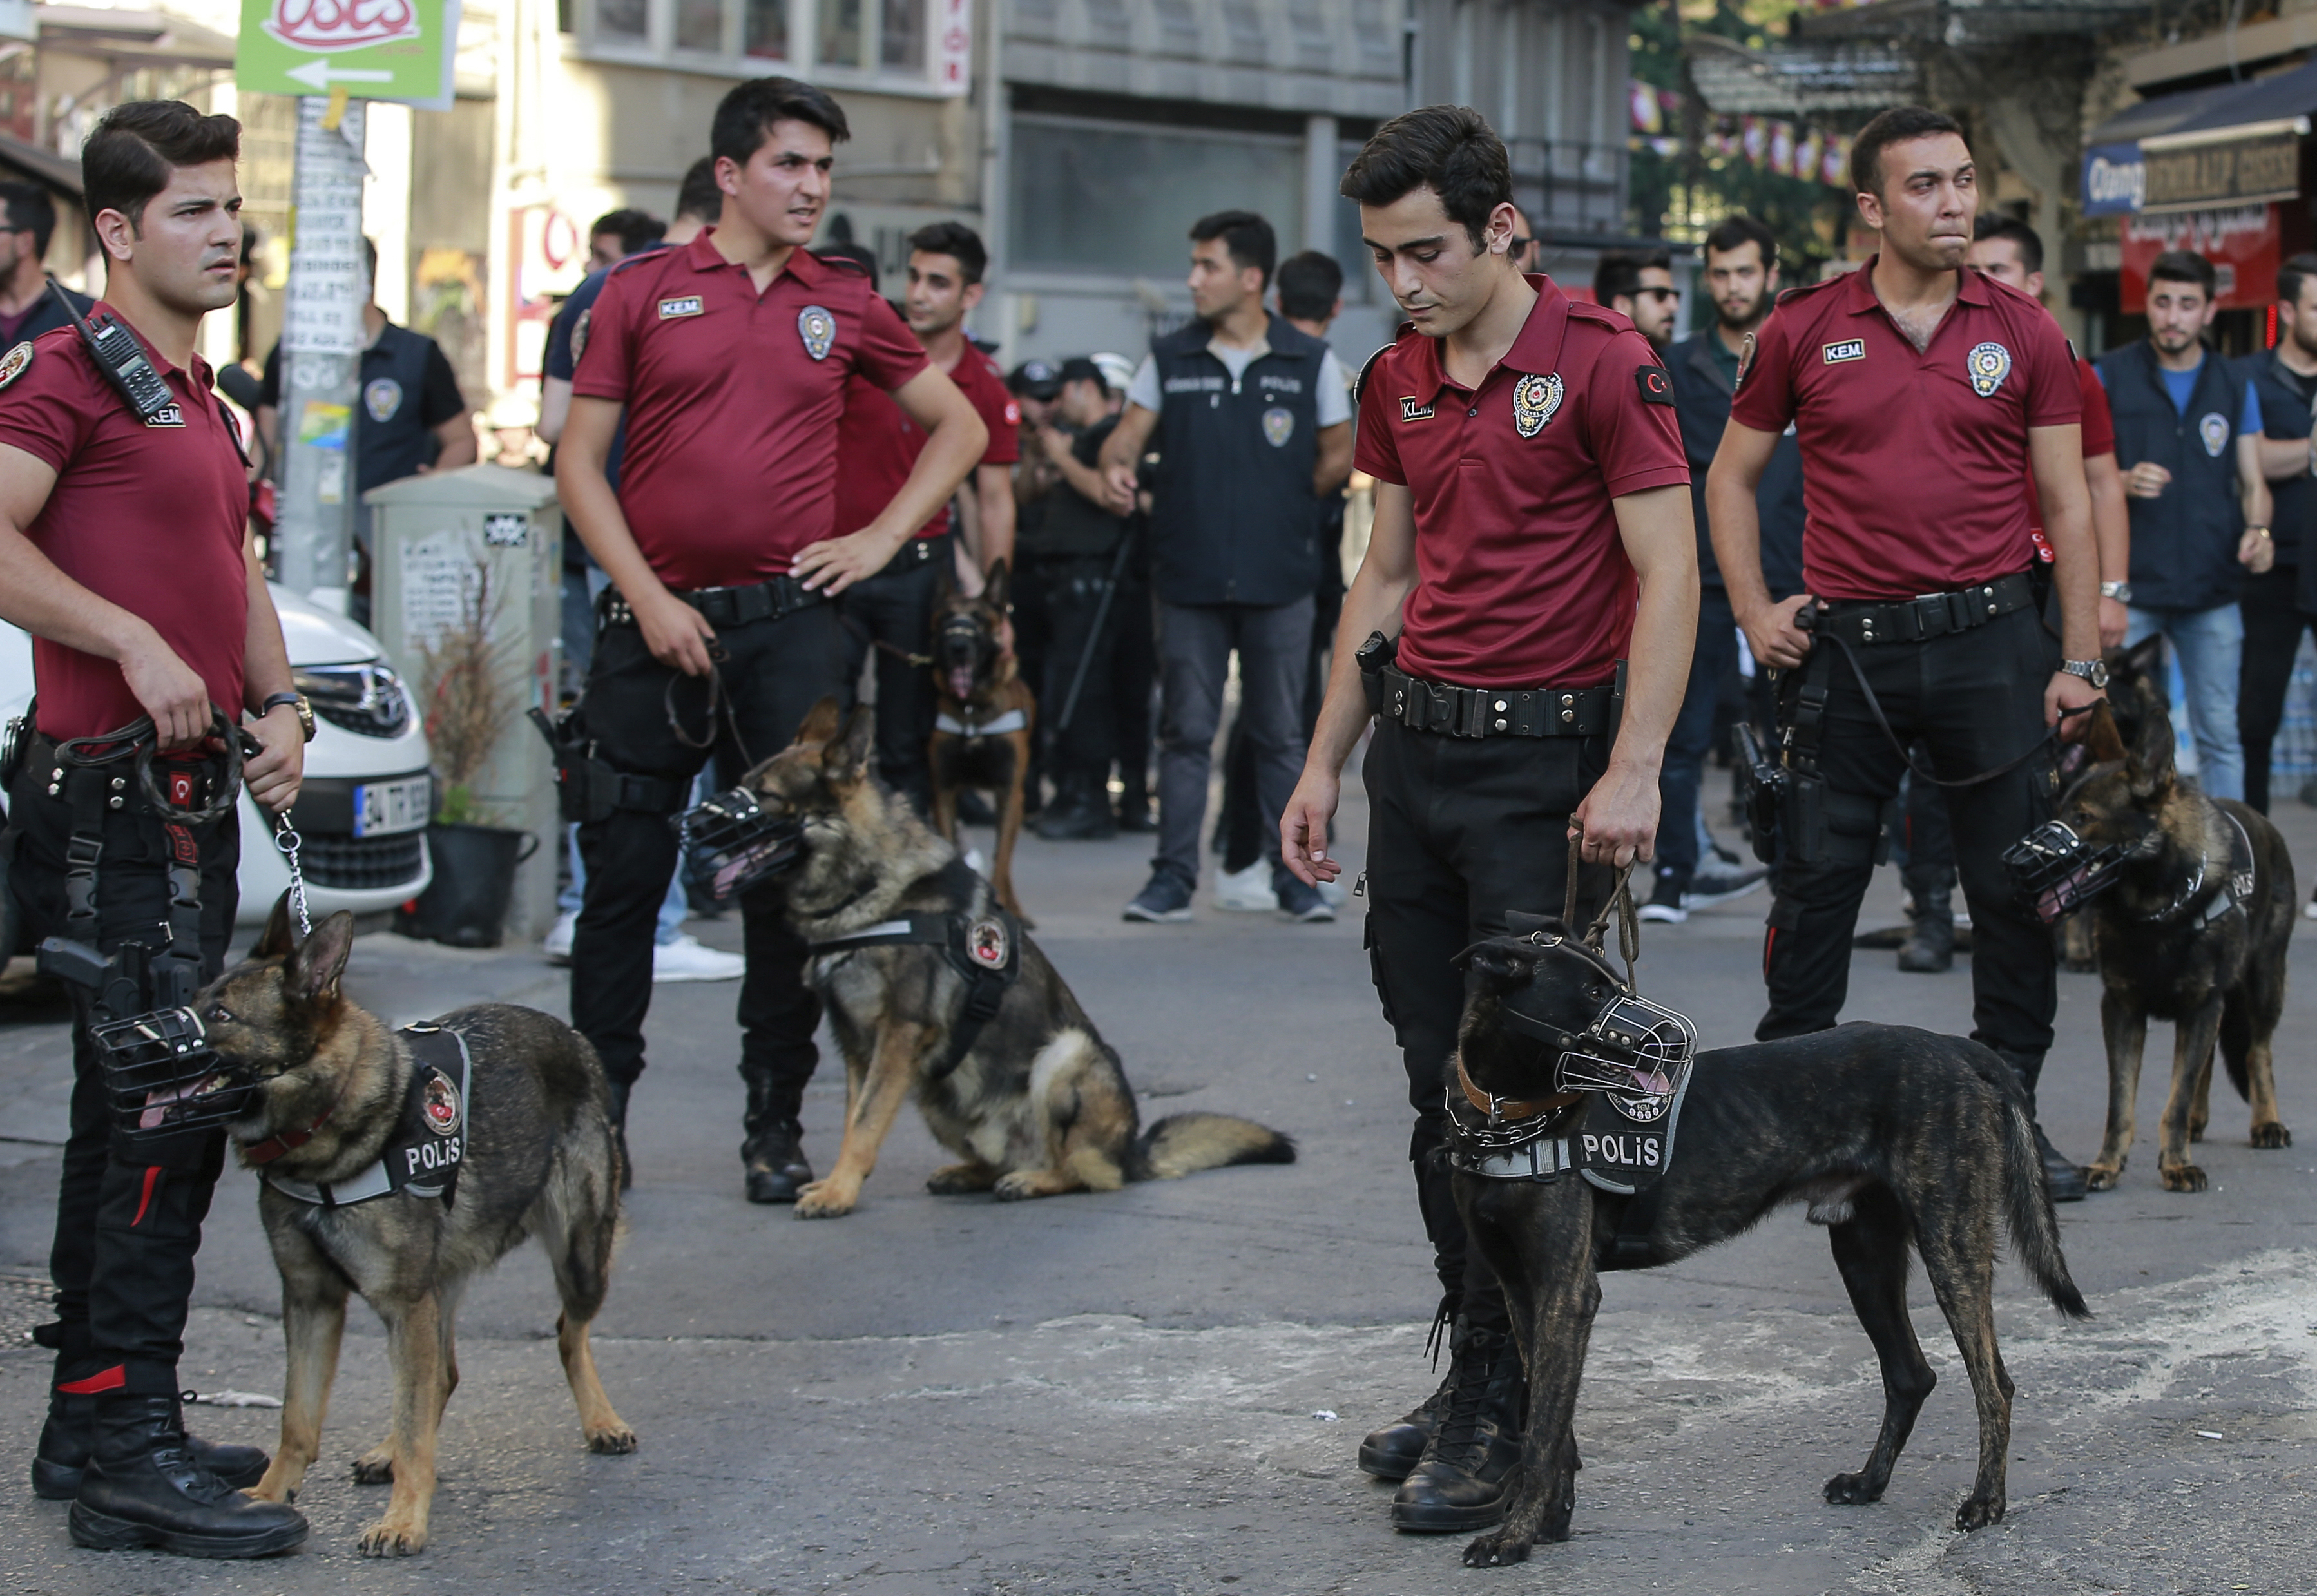 Police with dogs follow Turkey's lesbian, gay, bisexual, trans and intersex activists as they march despite a ban, in Istanbul, July 1, 2018.